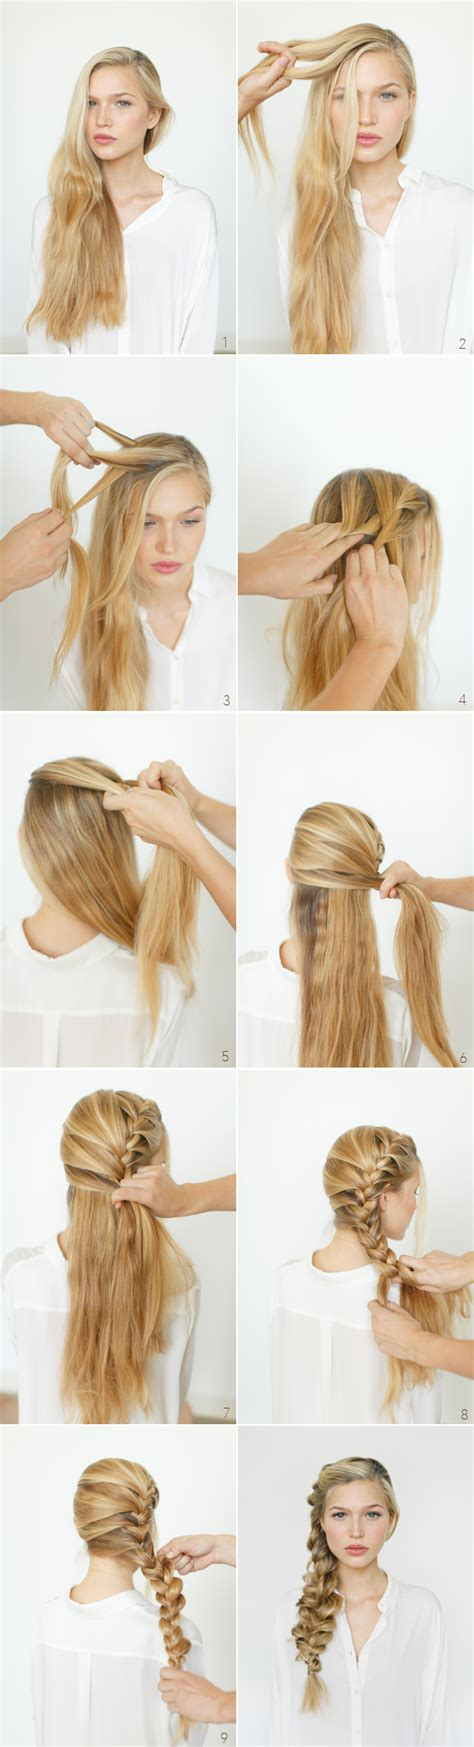 hairstyles braided tutorial 12 romantic braided hairstyles with useful tutorials